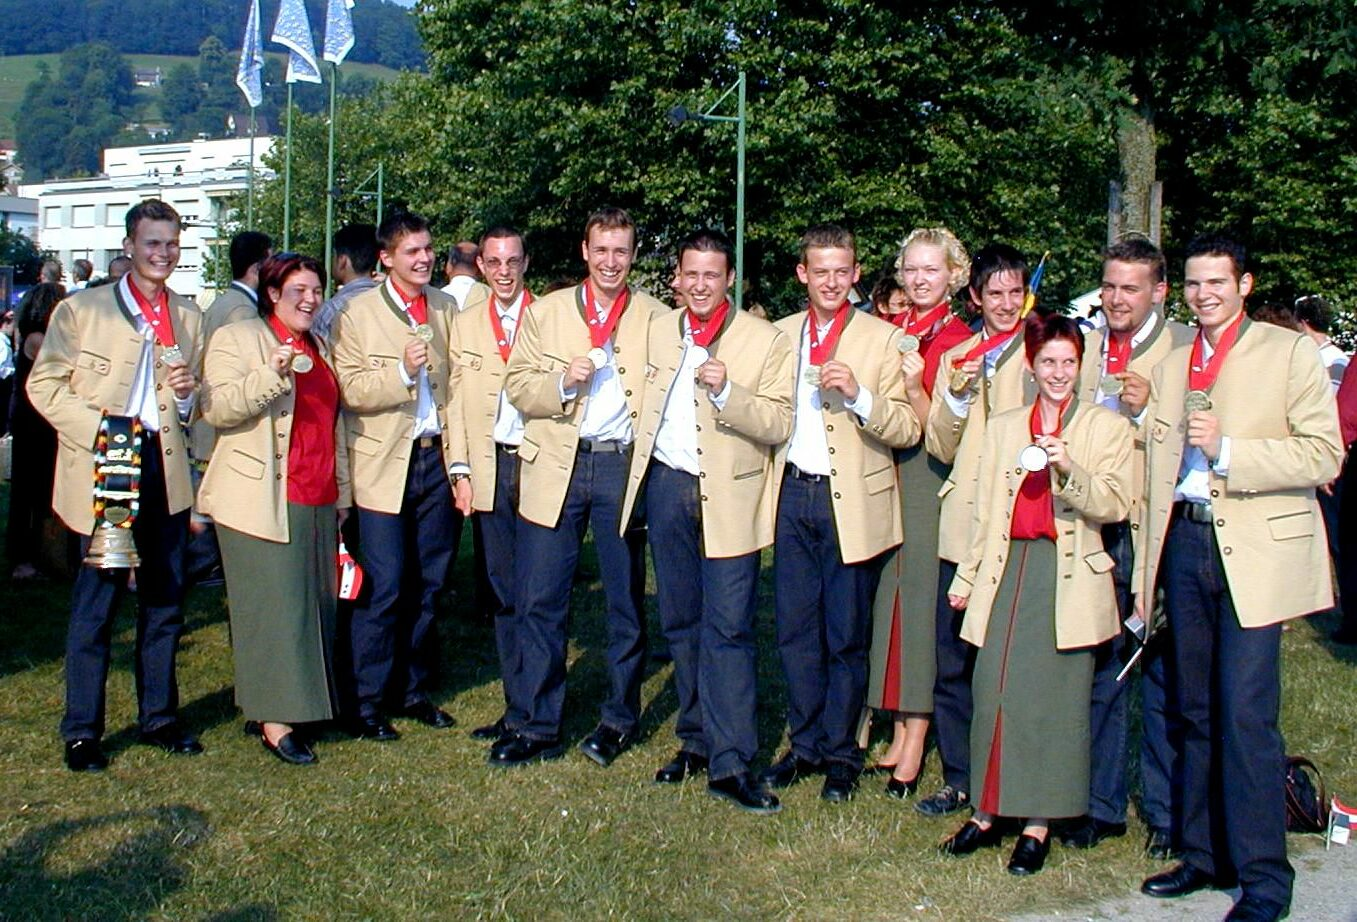 2003 Weltmeister in St. Gallen